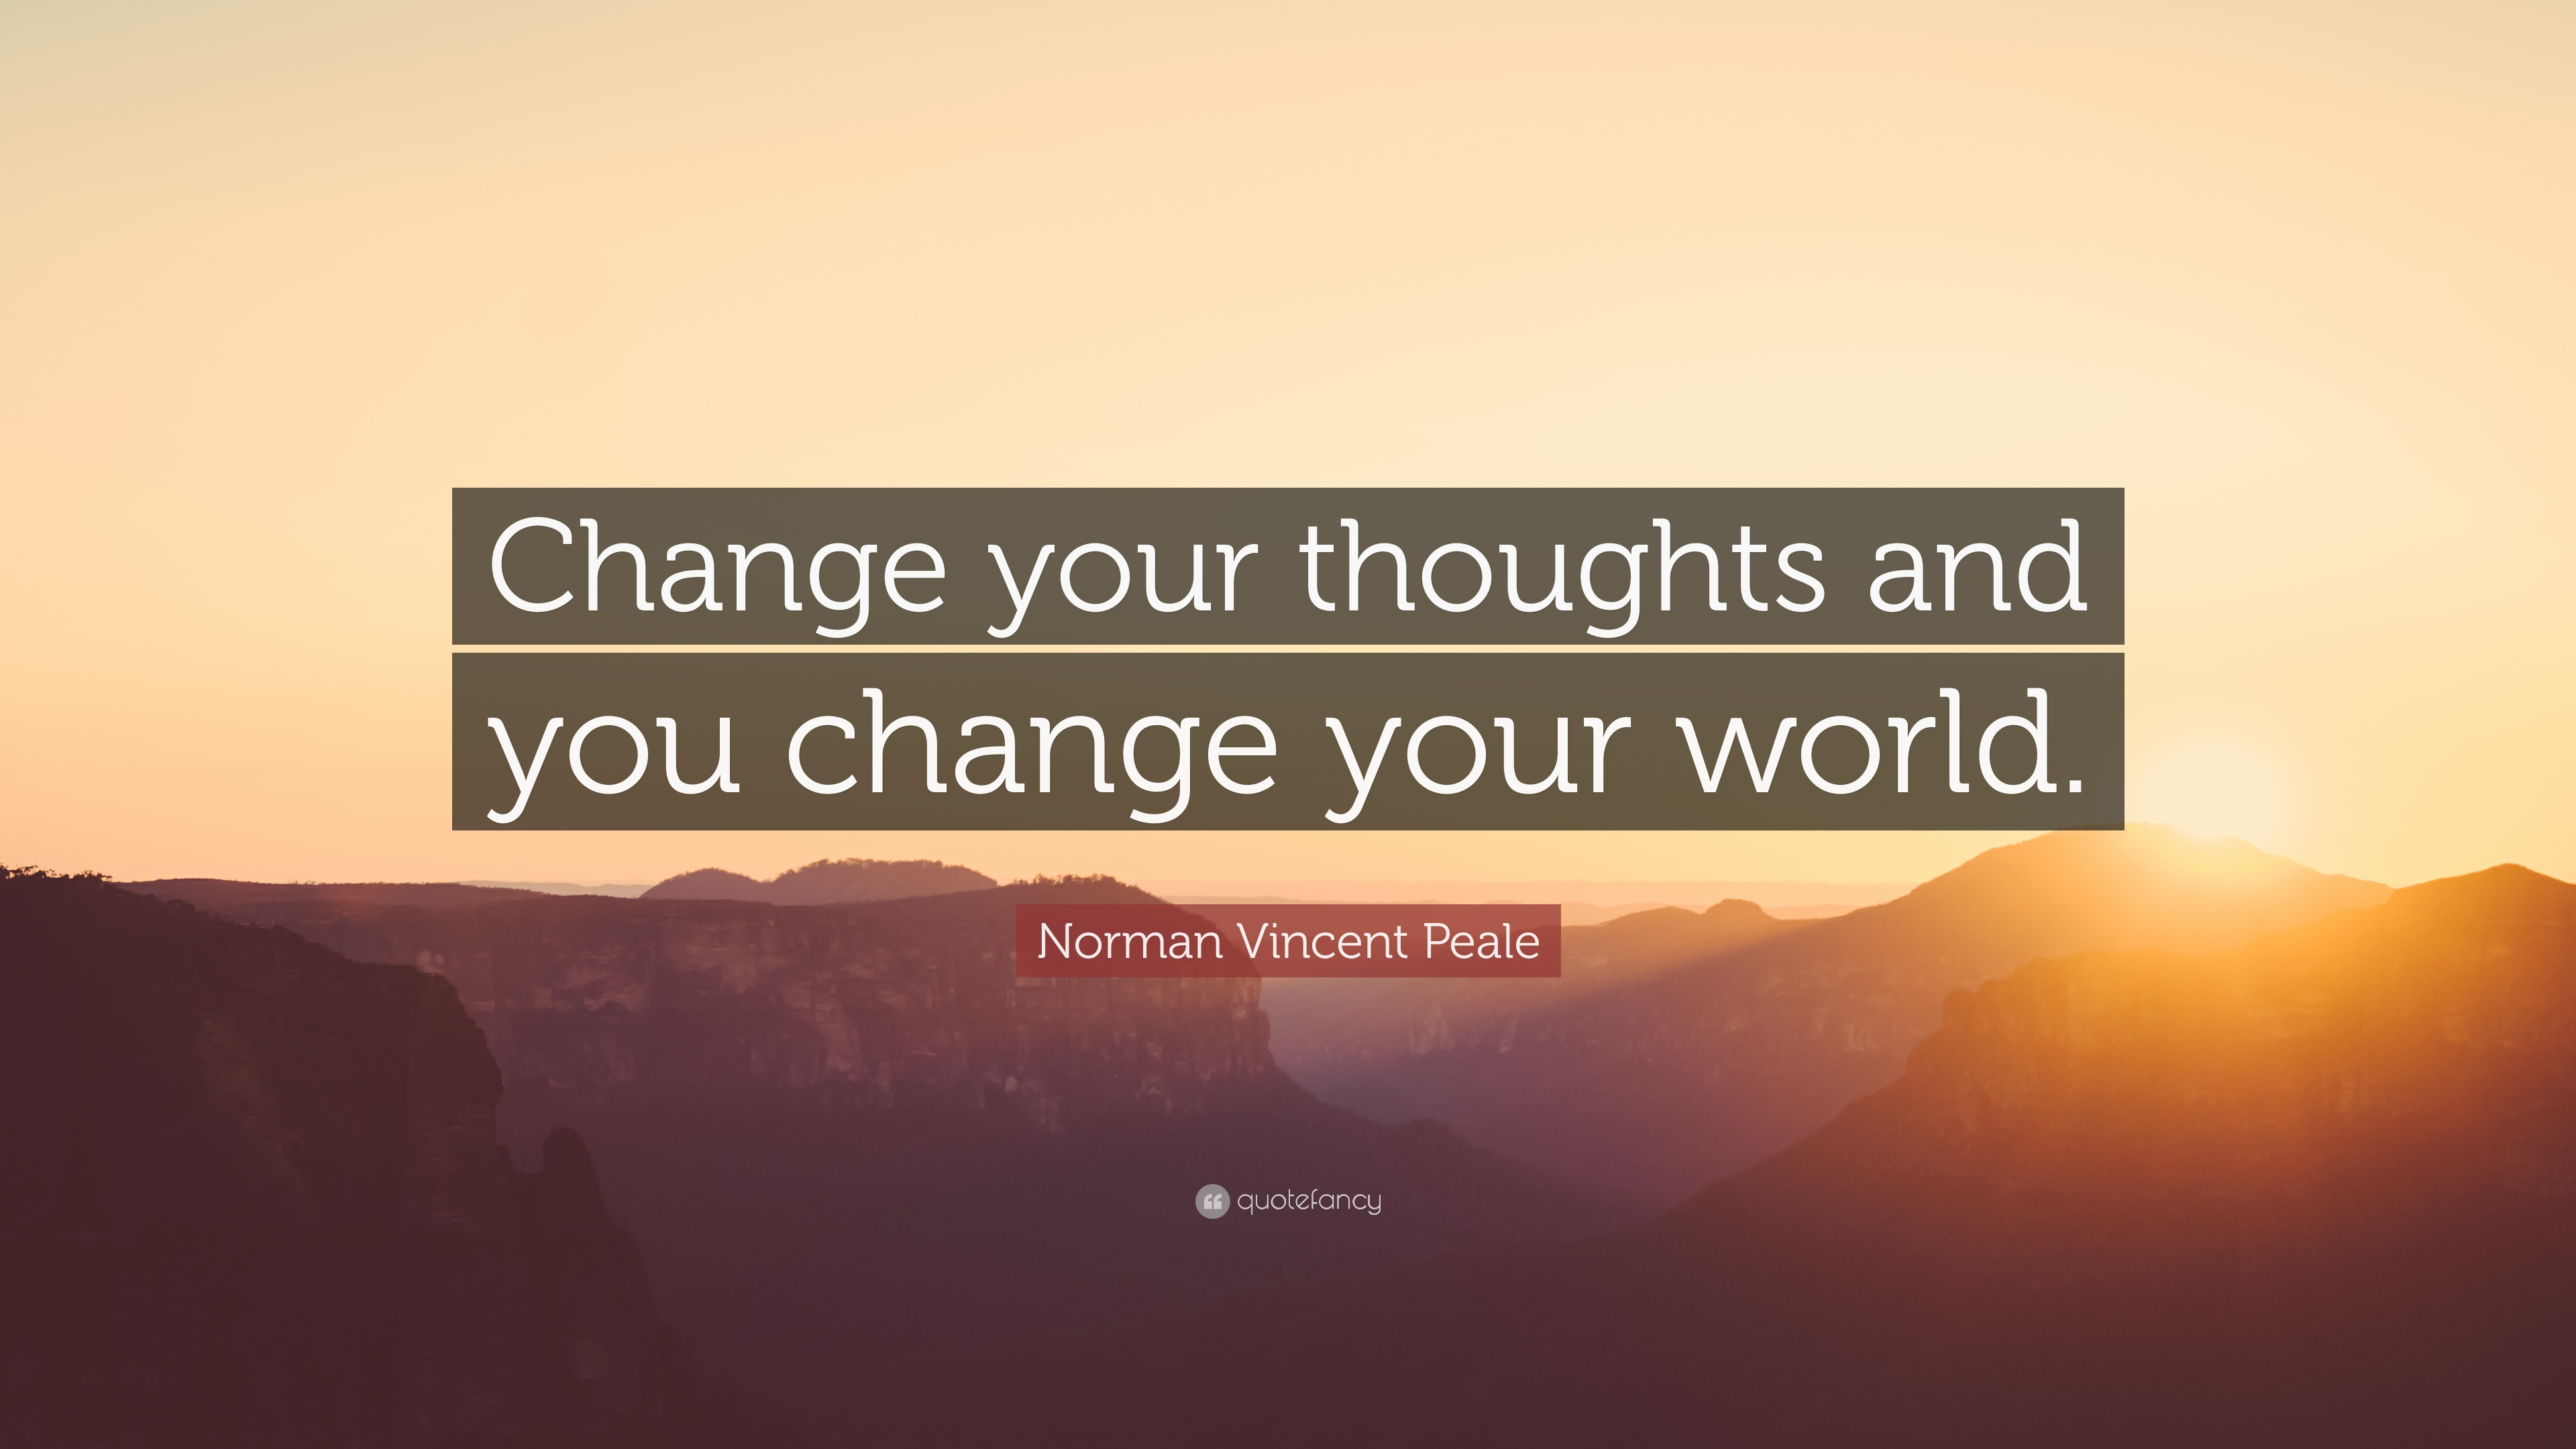 Captivating Norman Vincent Peale Quote: U201cChange Your Thoughts And You Change Your  World.u201d